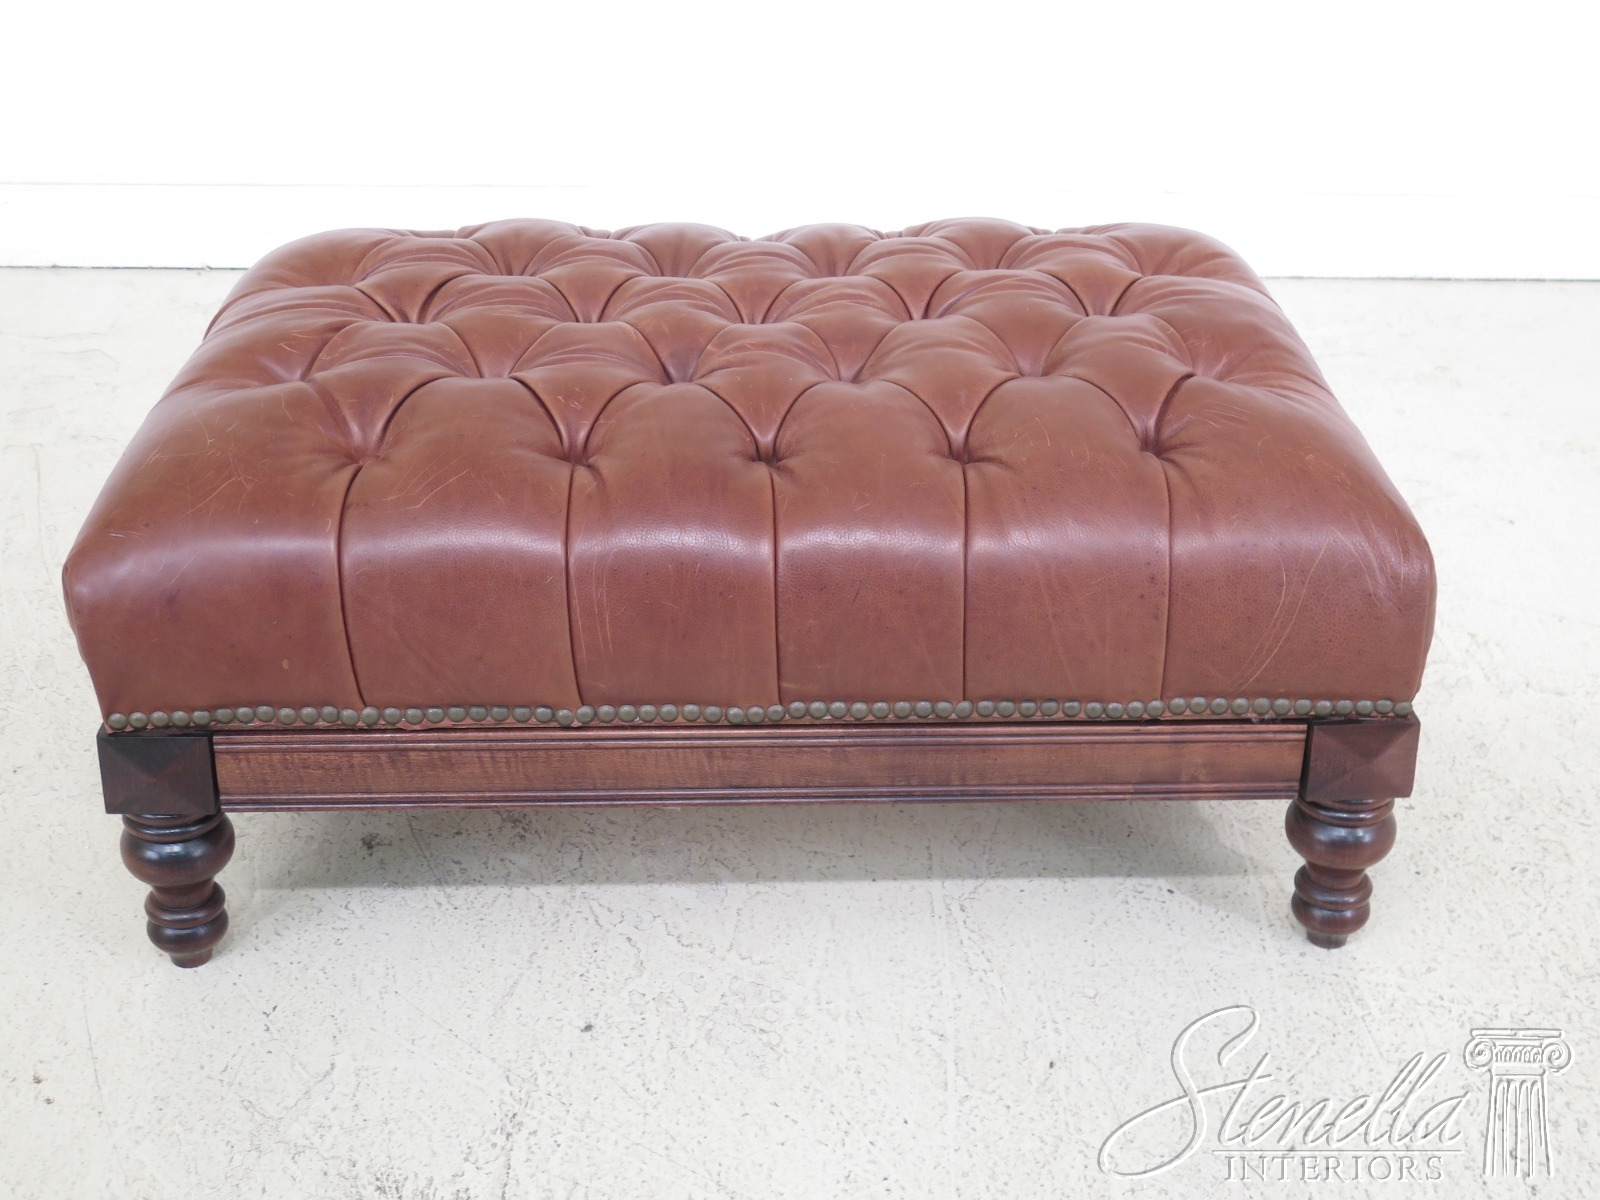 25659EC: Tufted Leather Ottoman Coffee Table W. Pull Out